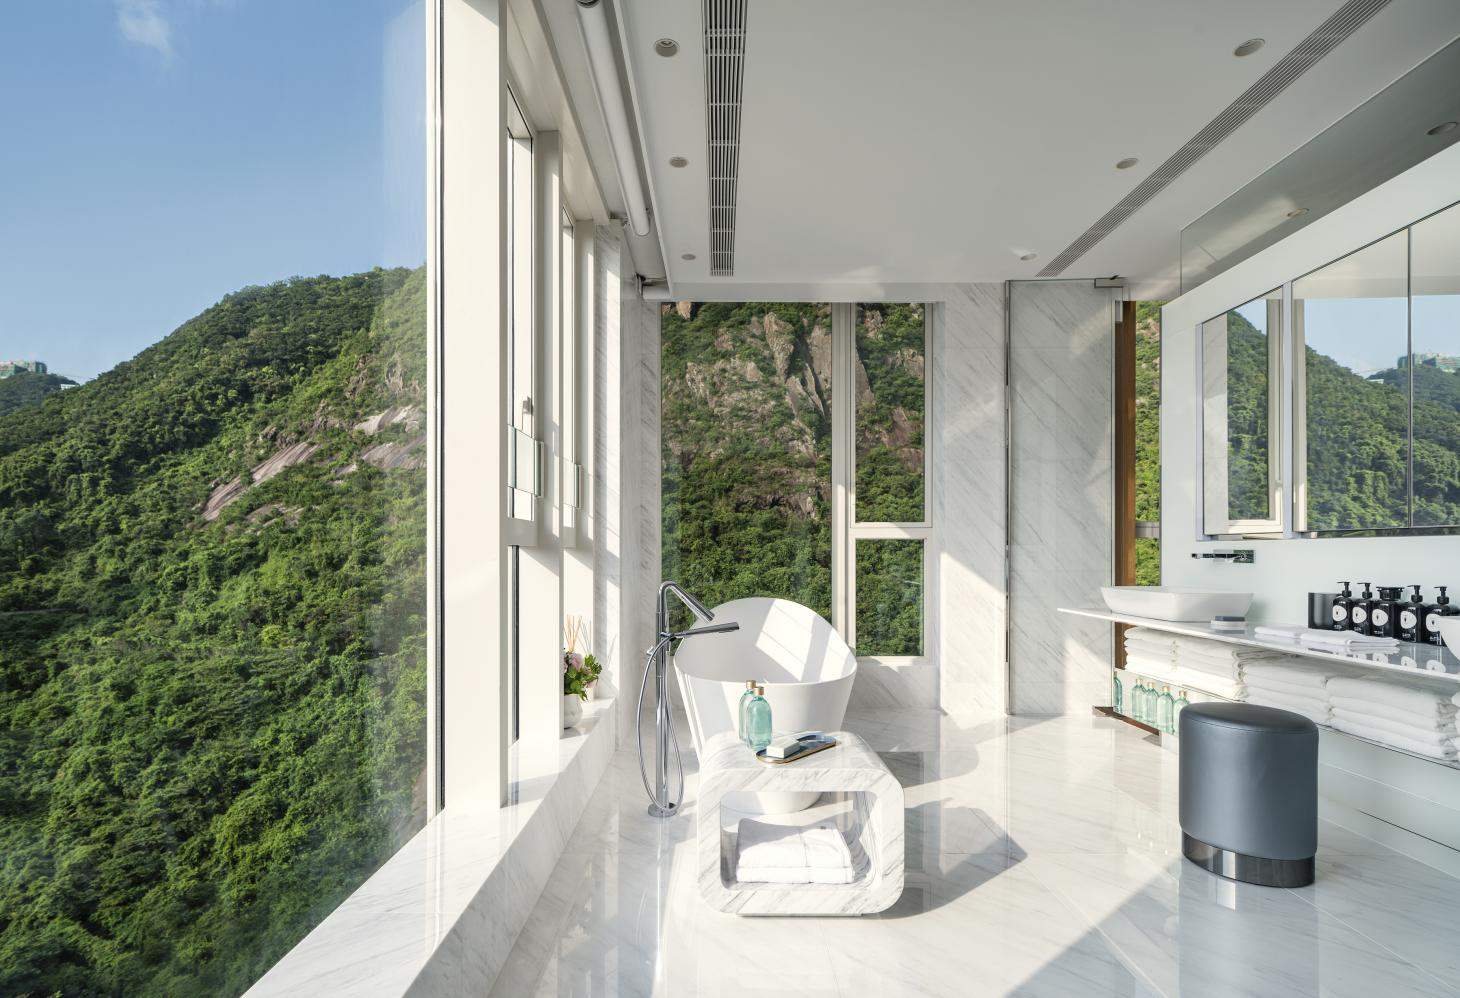 The bathroom with views of Victoria Peak in Hong Kong